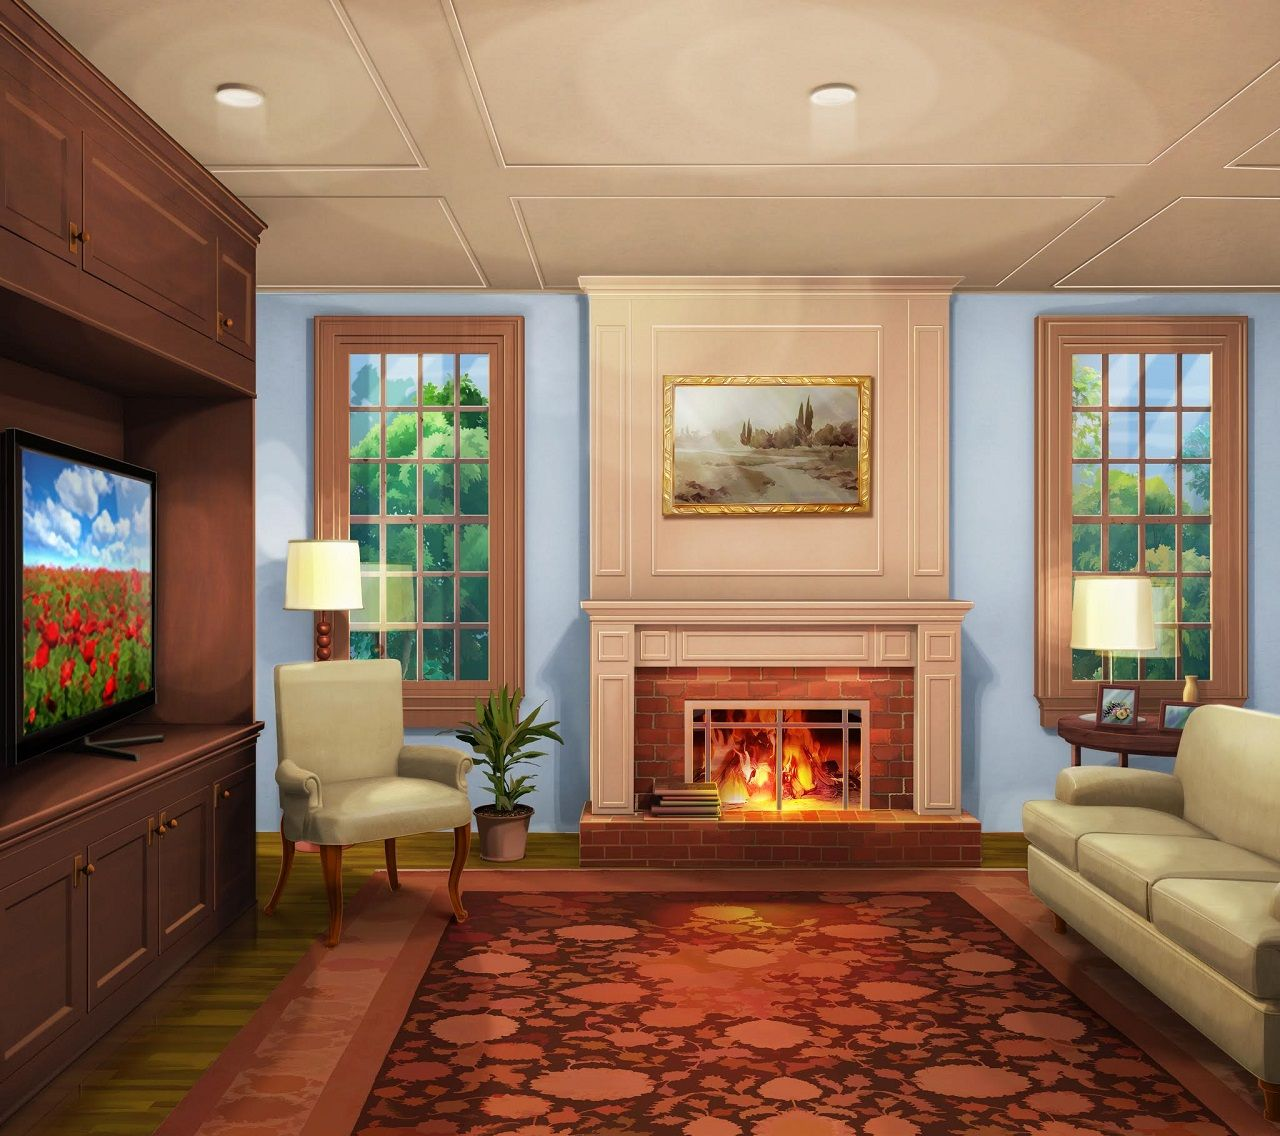 Room Background Int. Classic Livingroom Day Med #episodeinteractive #